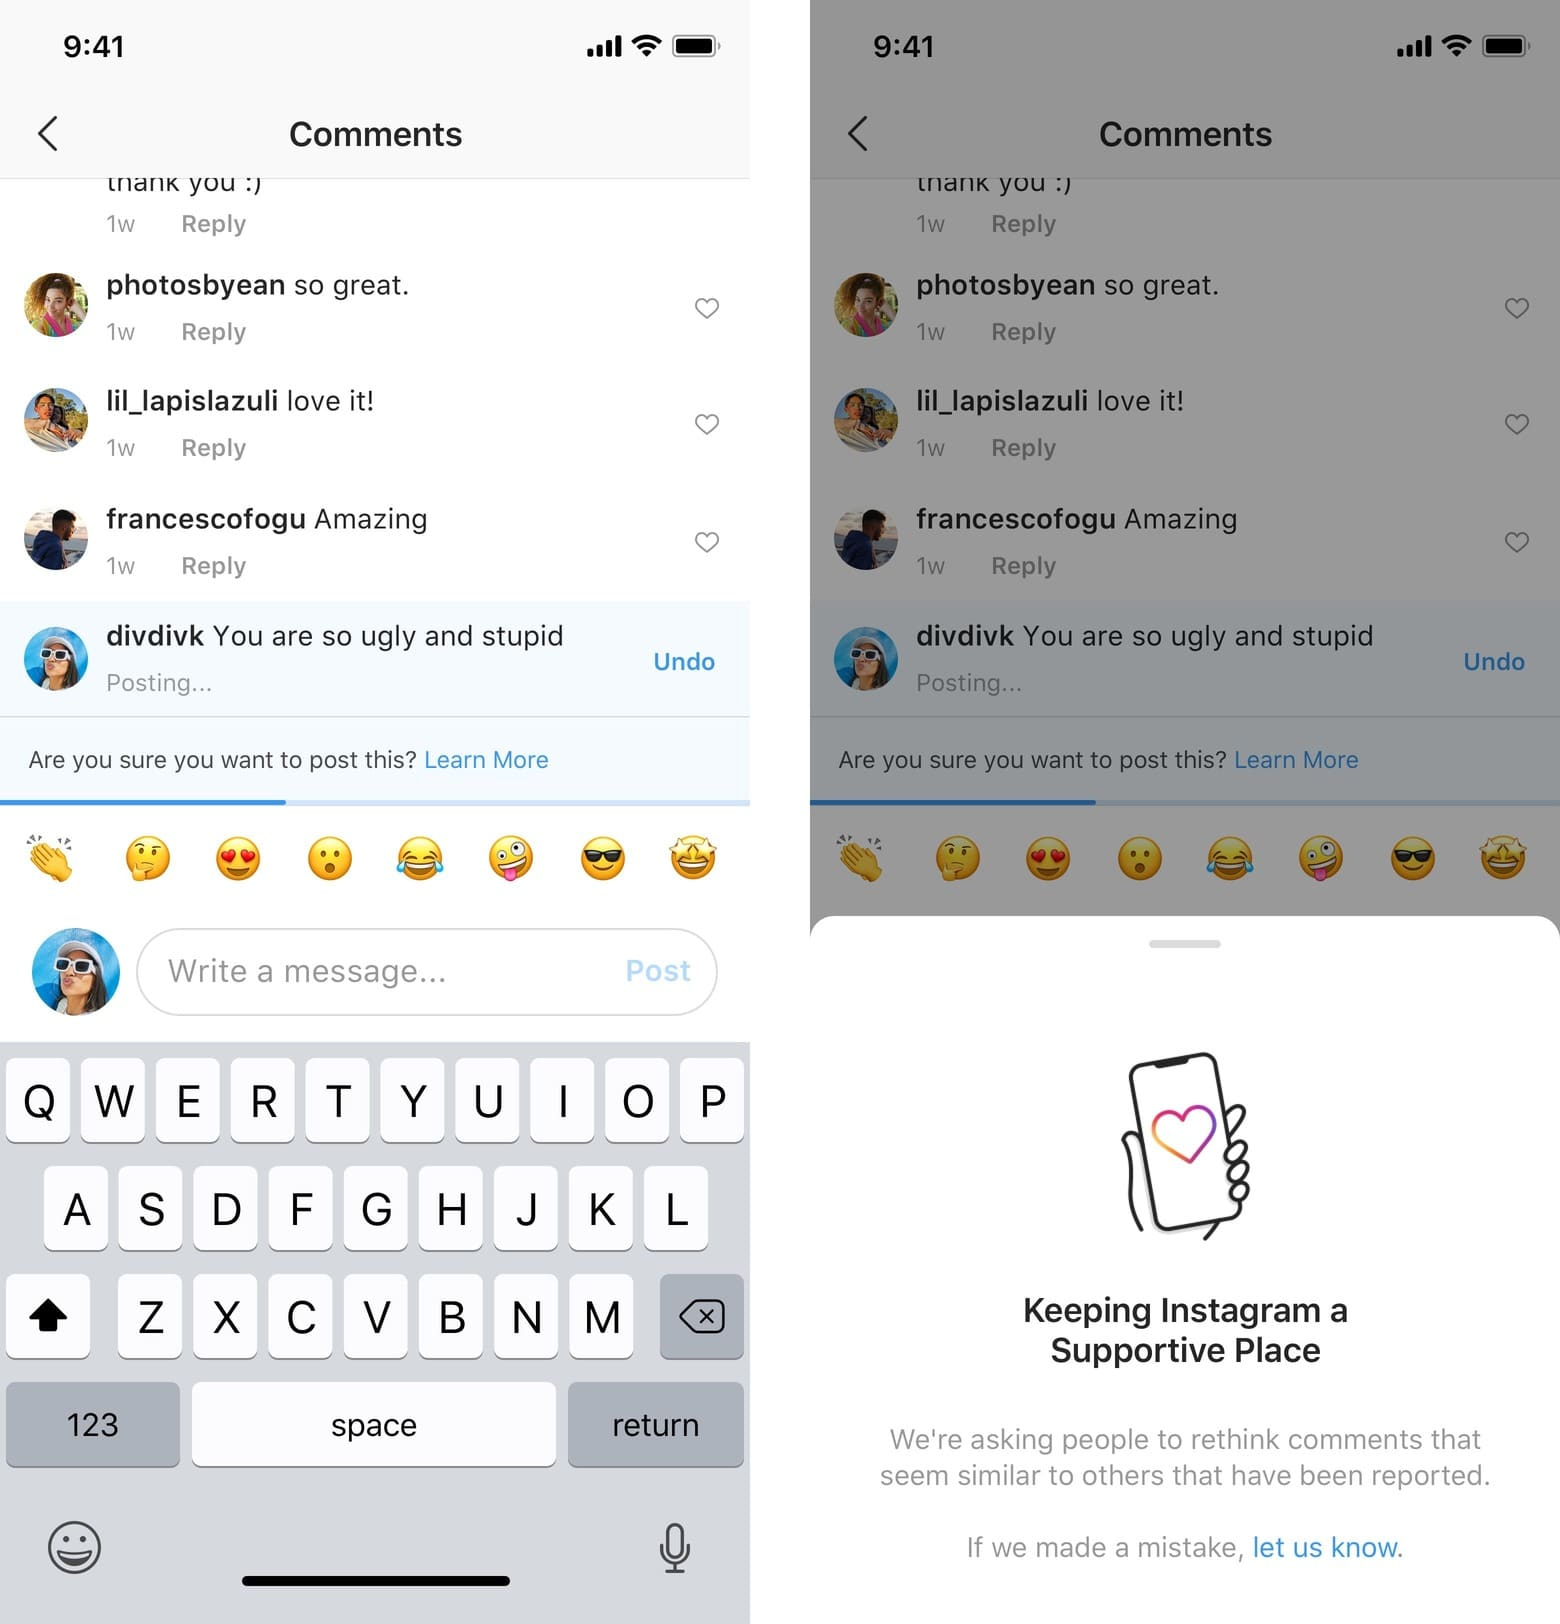 Instagram Looks to Stop Online Bullying with New Features